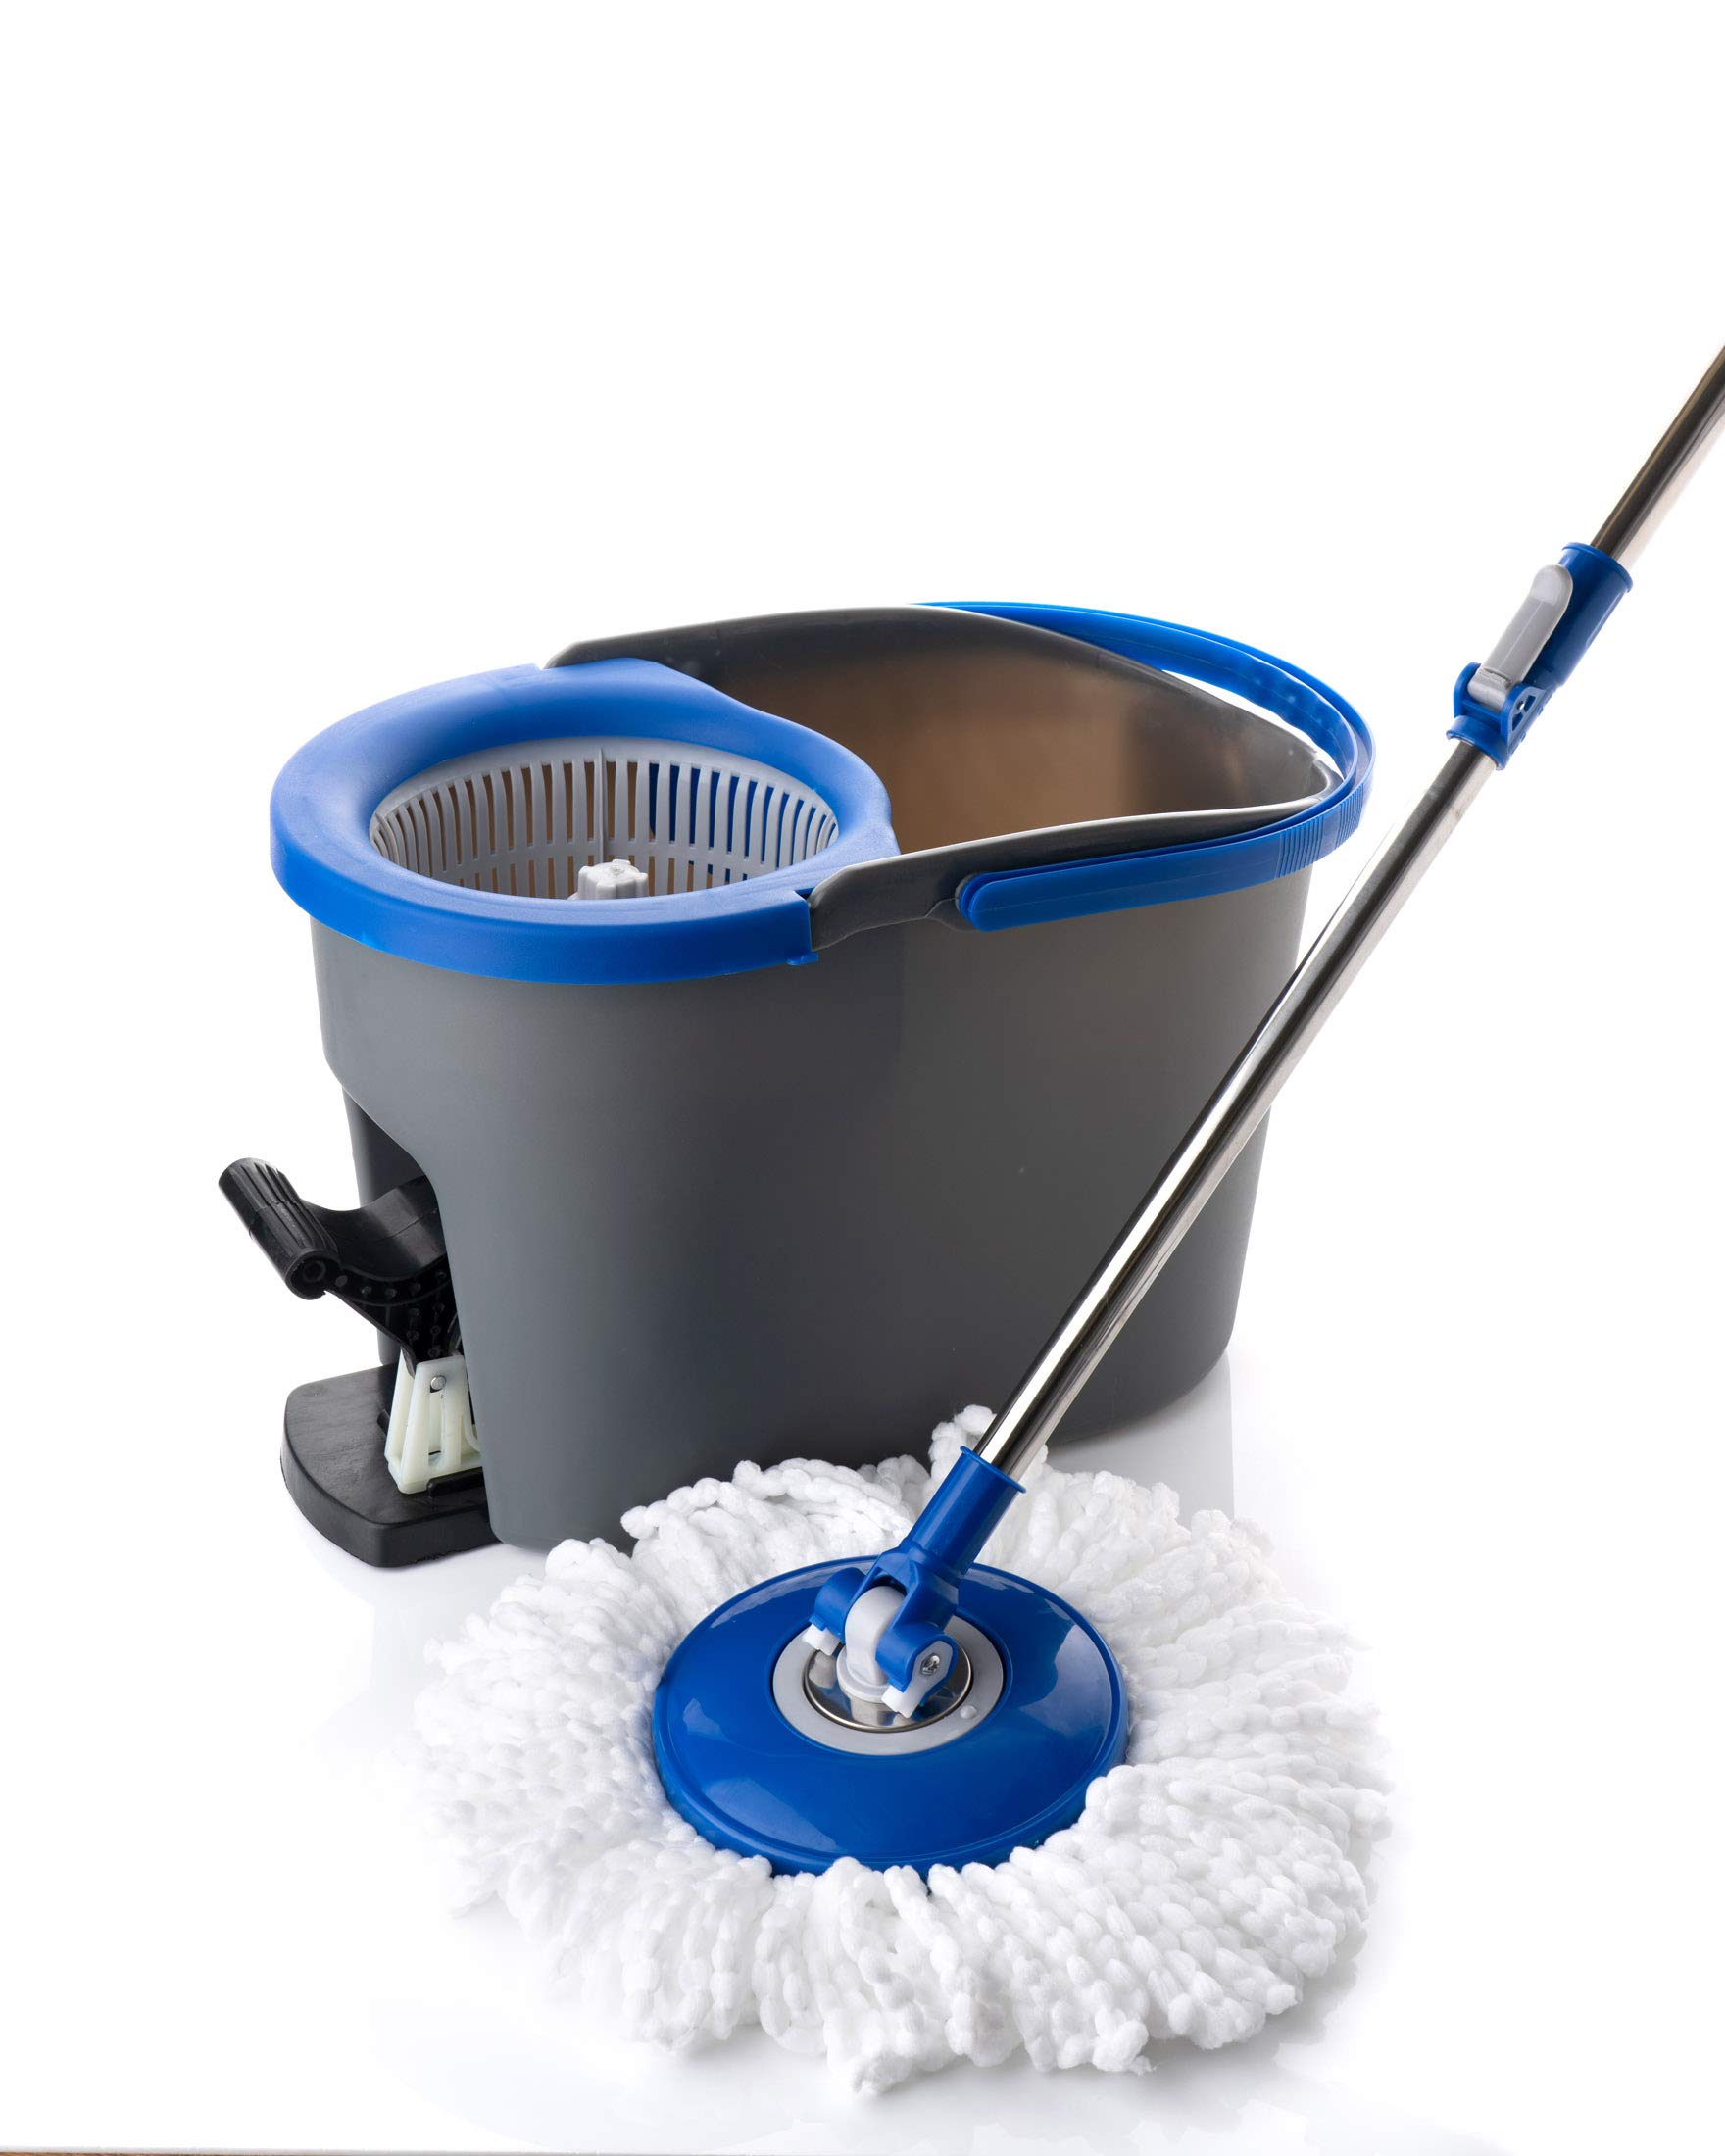 Simpli-Magic 79154 Spin Cleaning System with 3 Microfiber Mop Head Refills Included, Industrial by Simpli-Magic (Image #2)